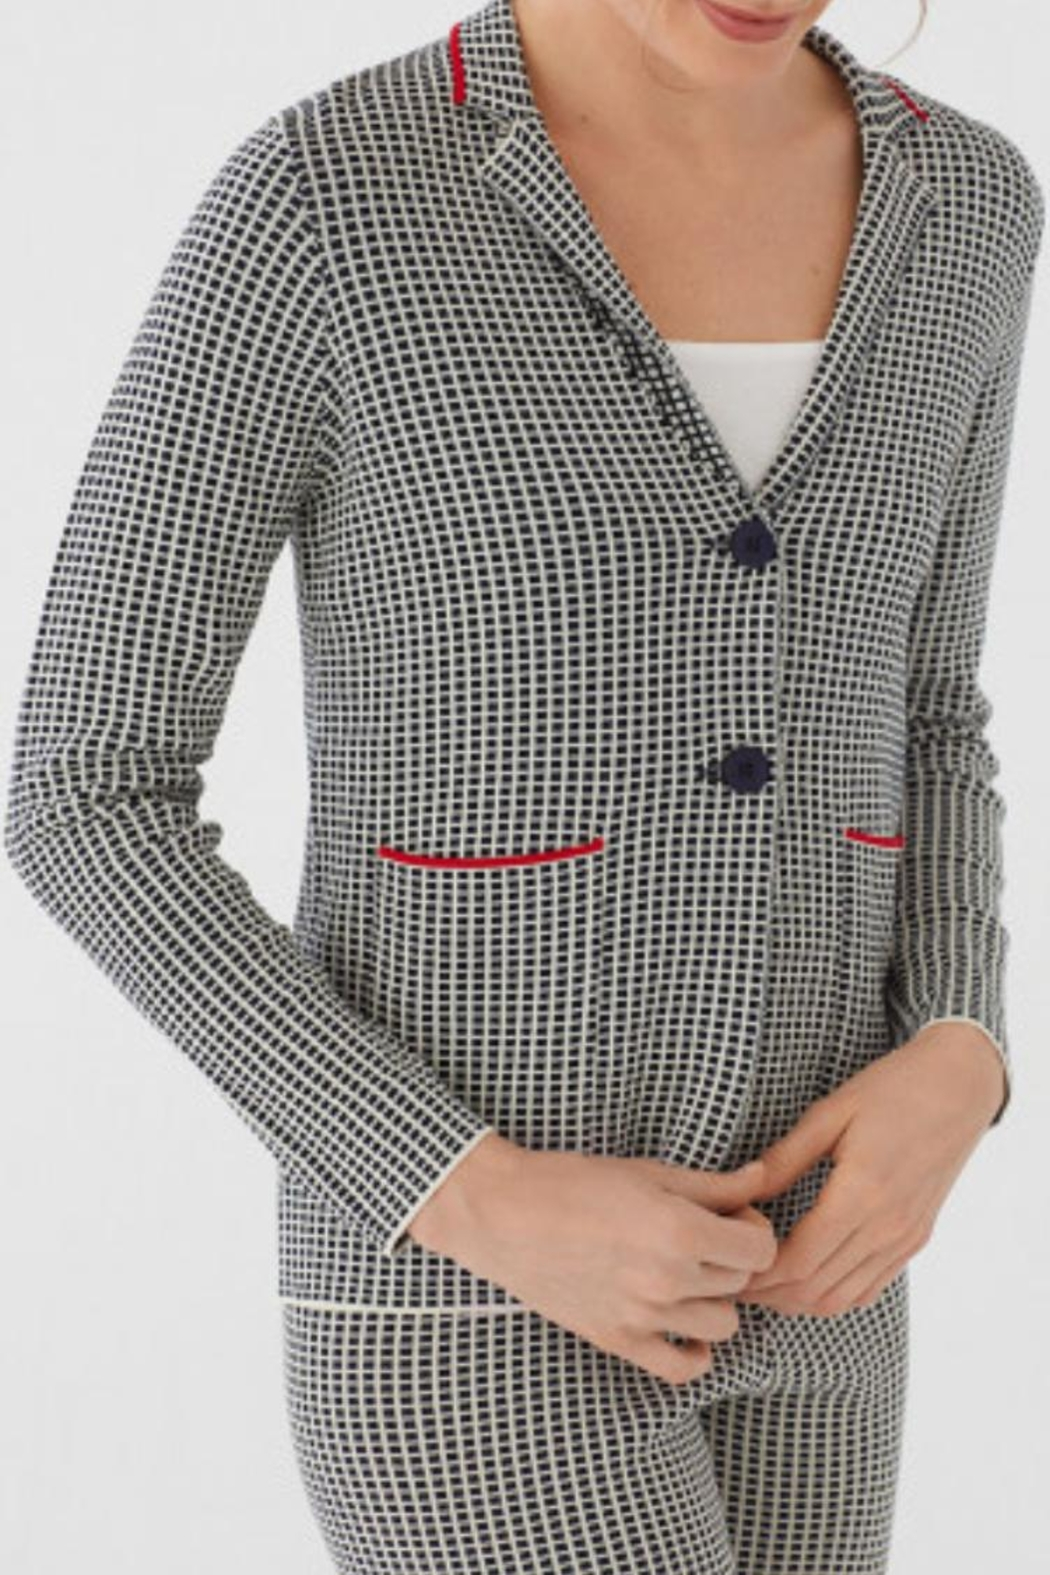 Nice Things Paloma S Minicheck Jacquard Blazer - Front Full Image